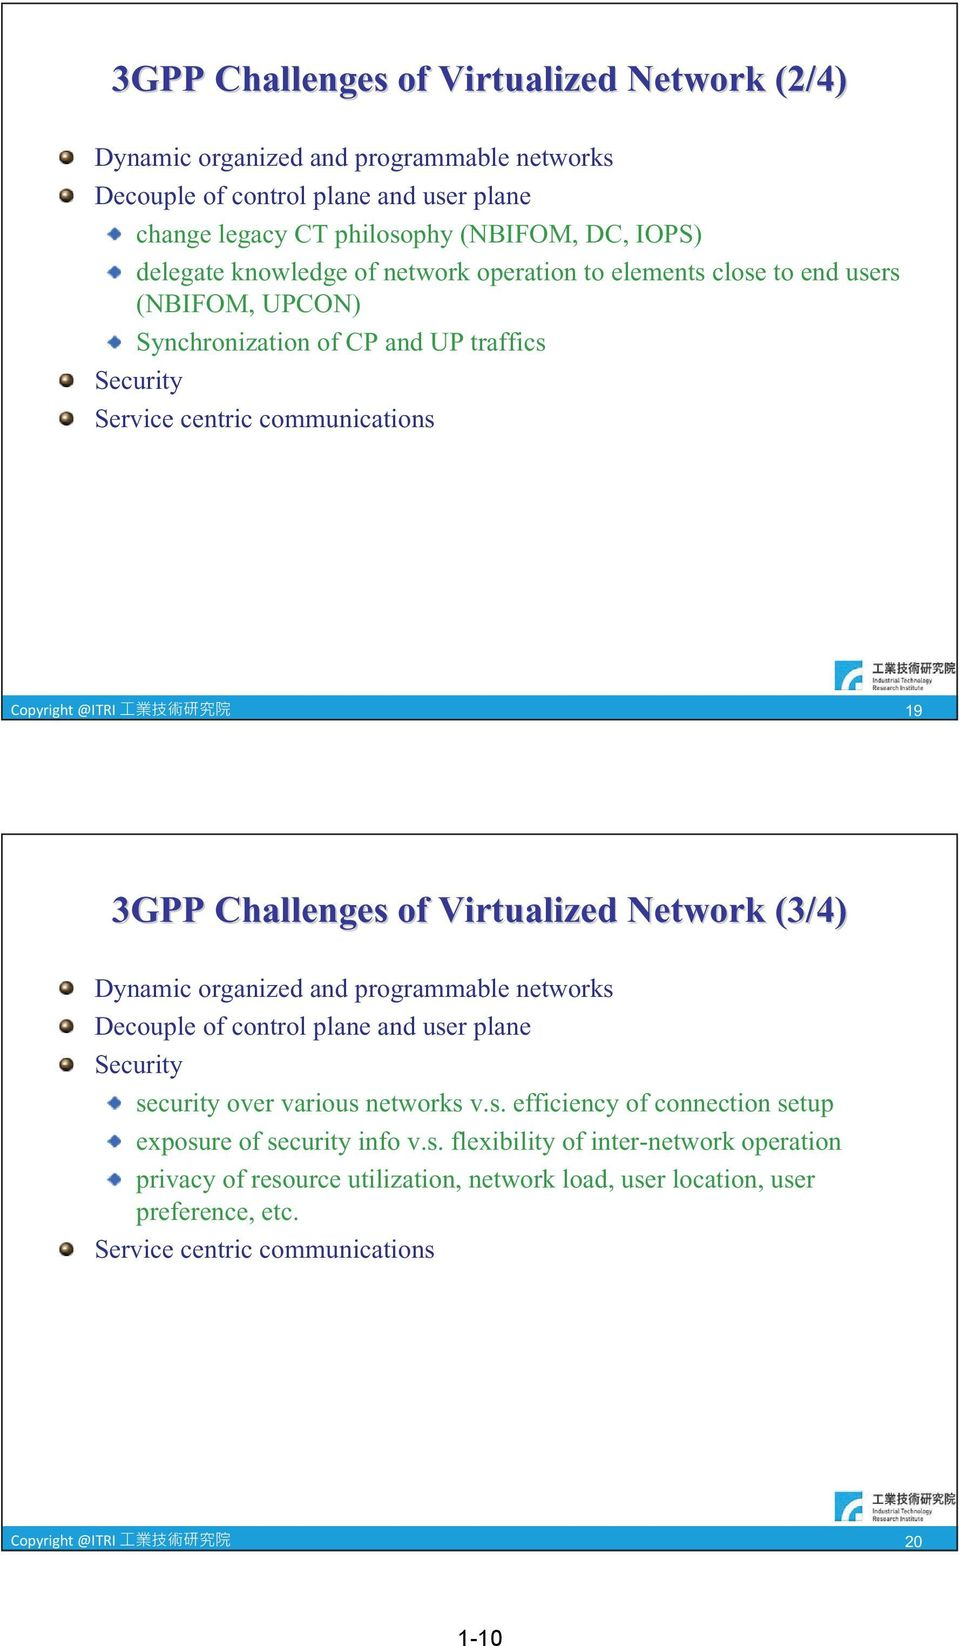 Virtualized Network (3/4) Dynamic organized and programmable networks Decouple of control plane and user plane Security security over various networks v.s. efficiency of connection setup exposure of security info v.